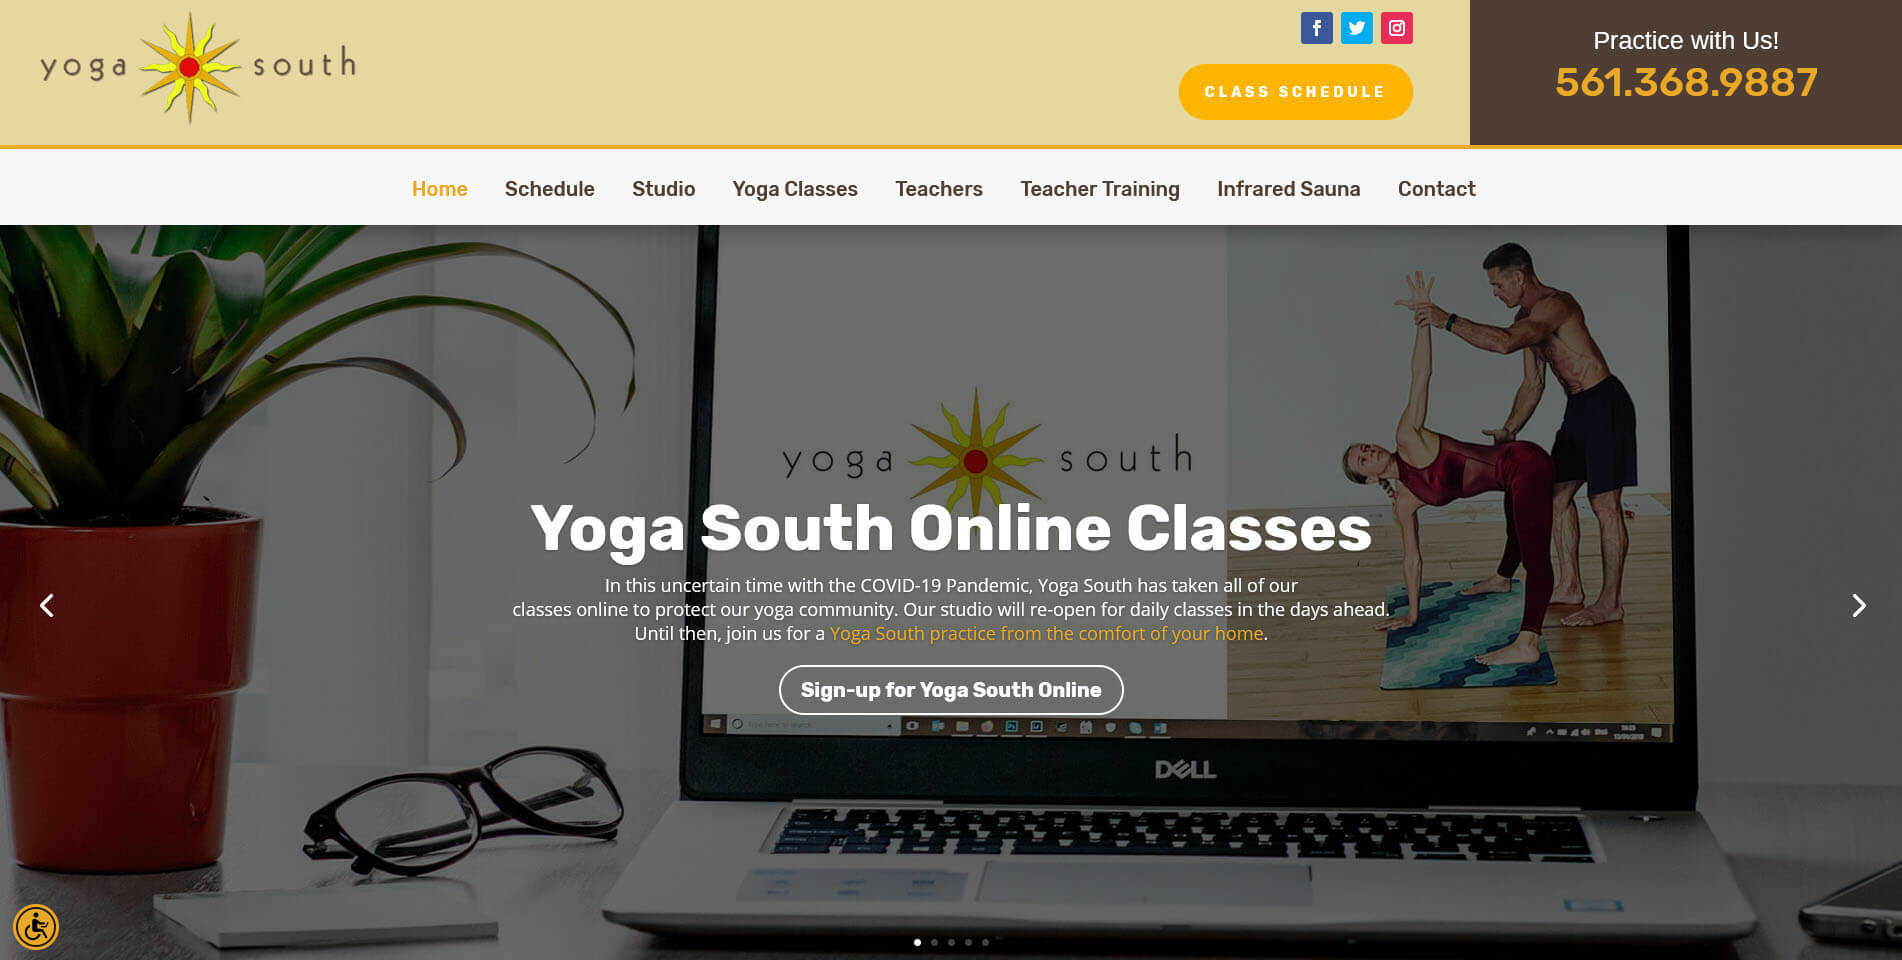 An image of the homepage of Yoga South, website created by Not Fade Away Marketing